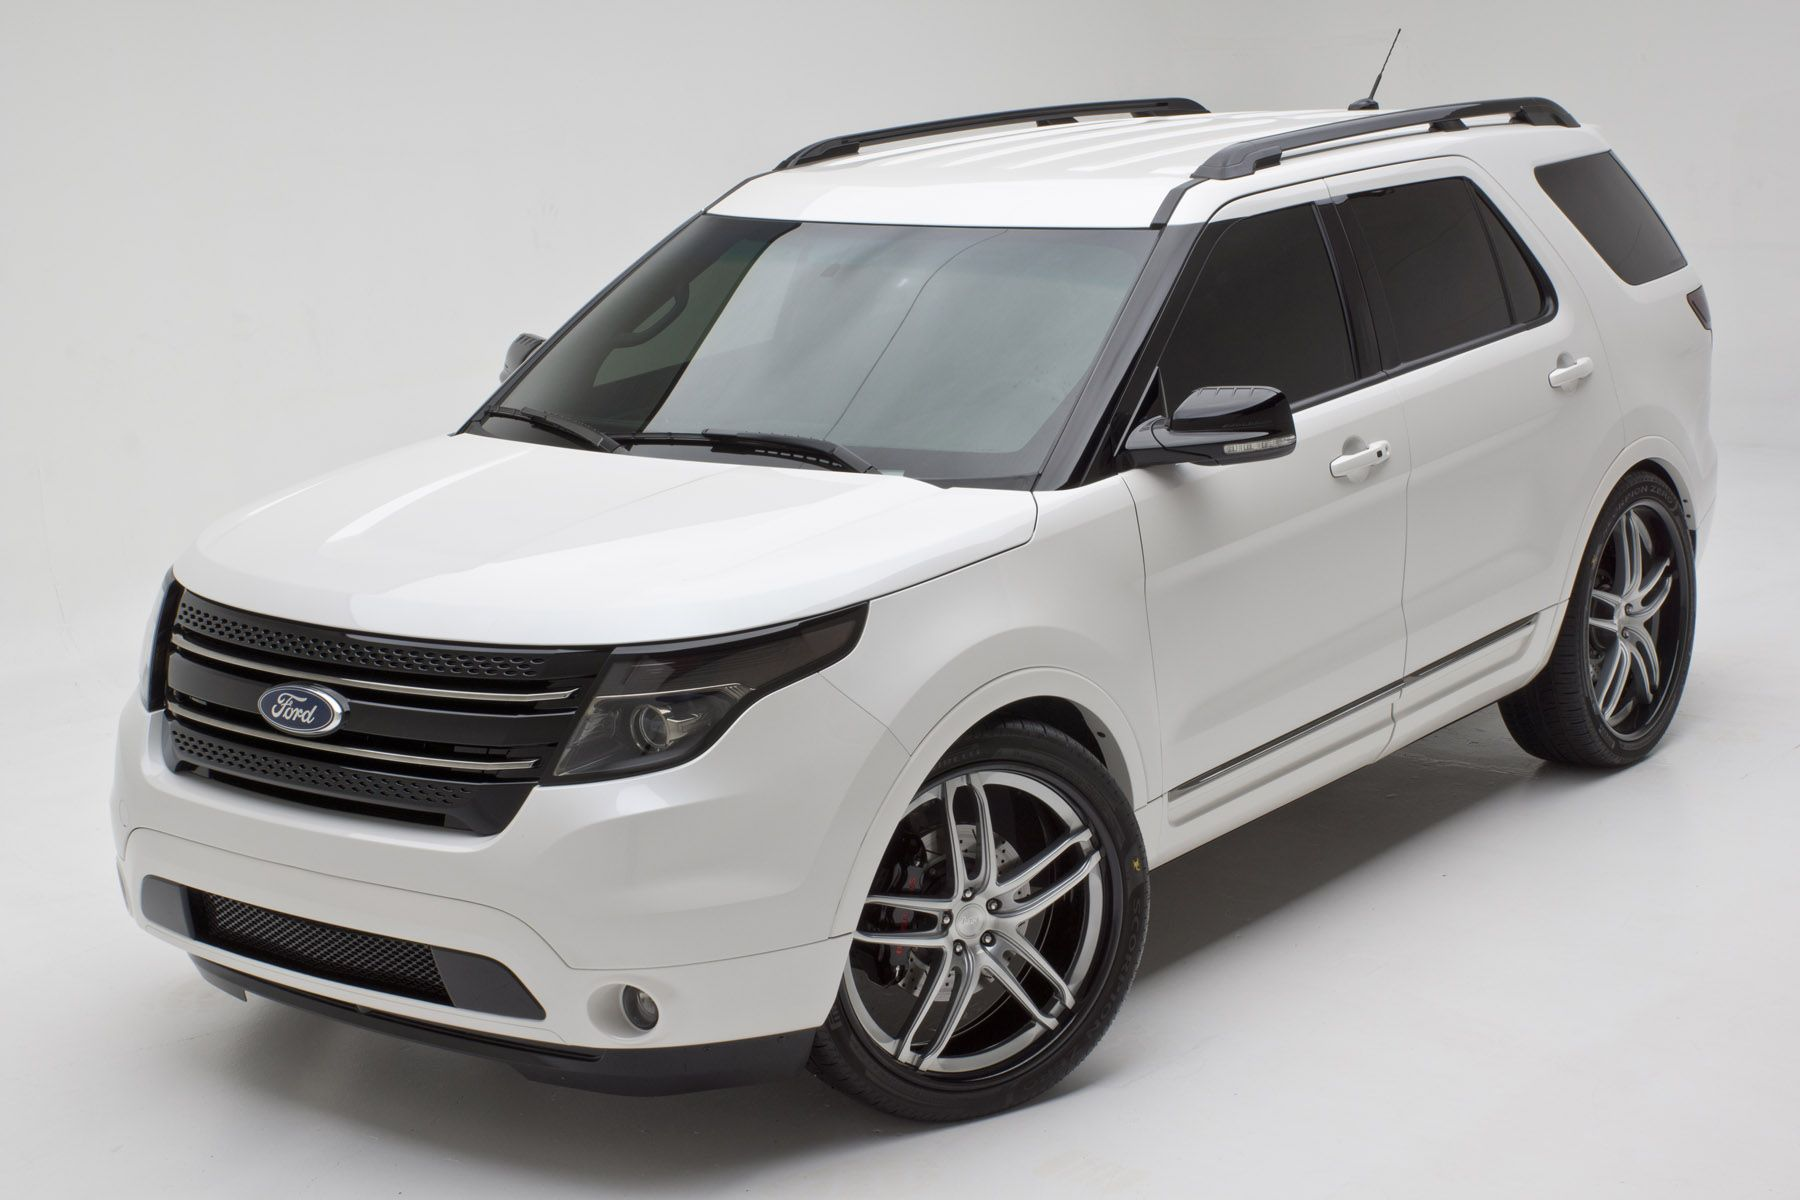 2012 Ford Explorer Limited by DSO Eyewear Exterior BASF